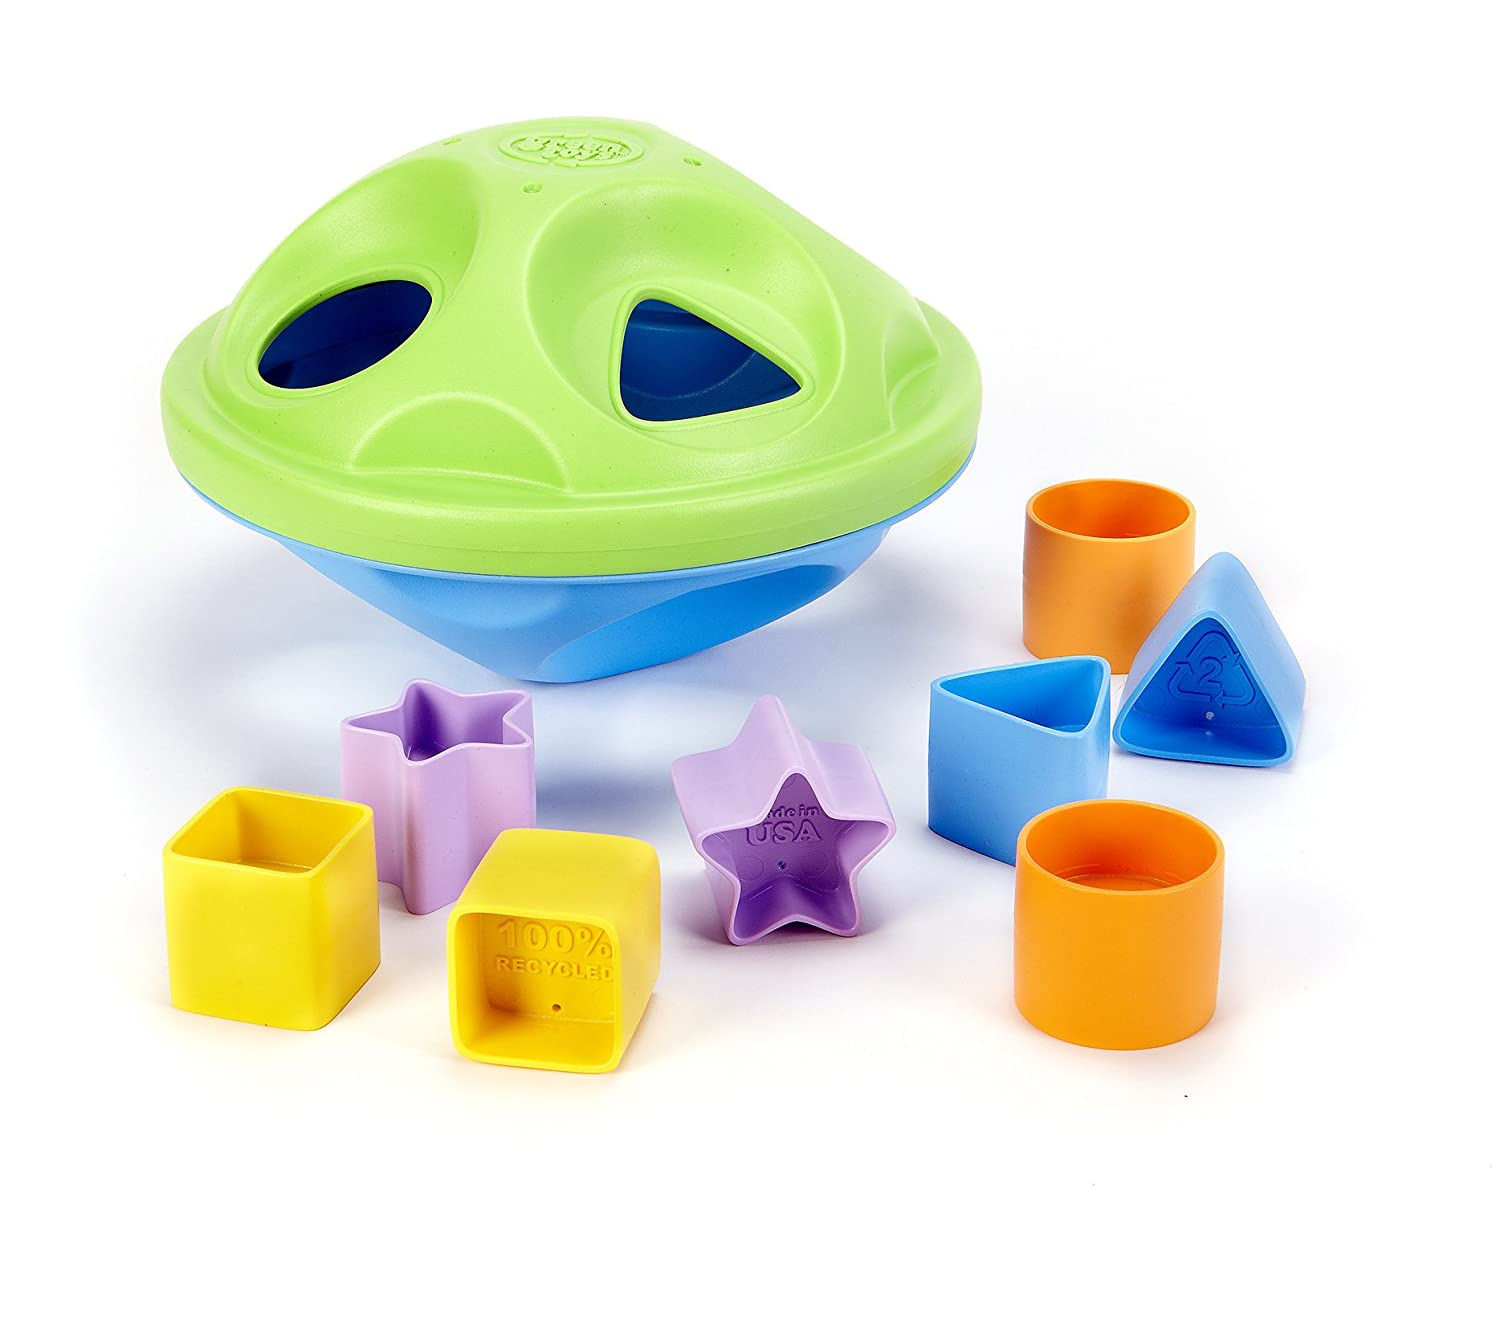 Baby toys made in the USA